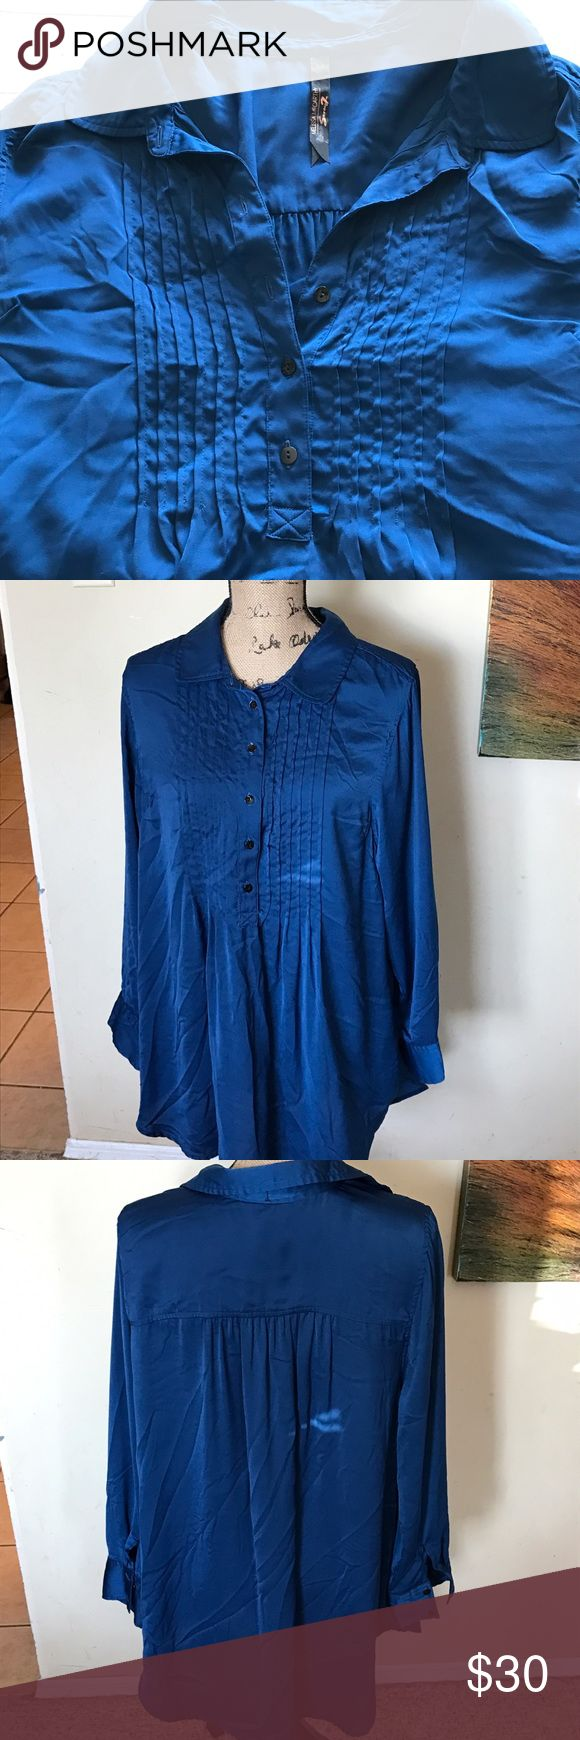 Melissa McCarthy blouse Great blouse Melissa McCarthy Seven. Loose fitting great with skinny jeans or leggings. Never wore no tags Melissa McCarthy Tops Blouses